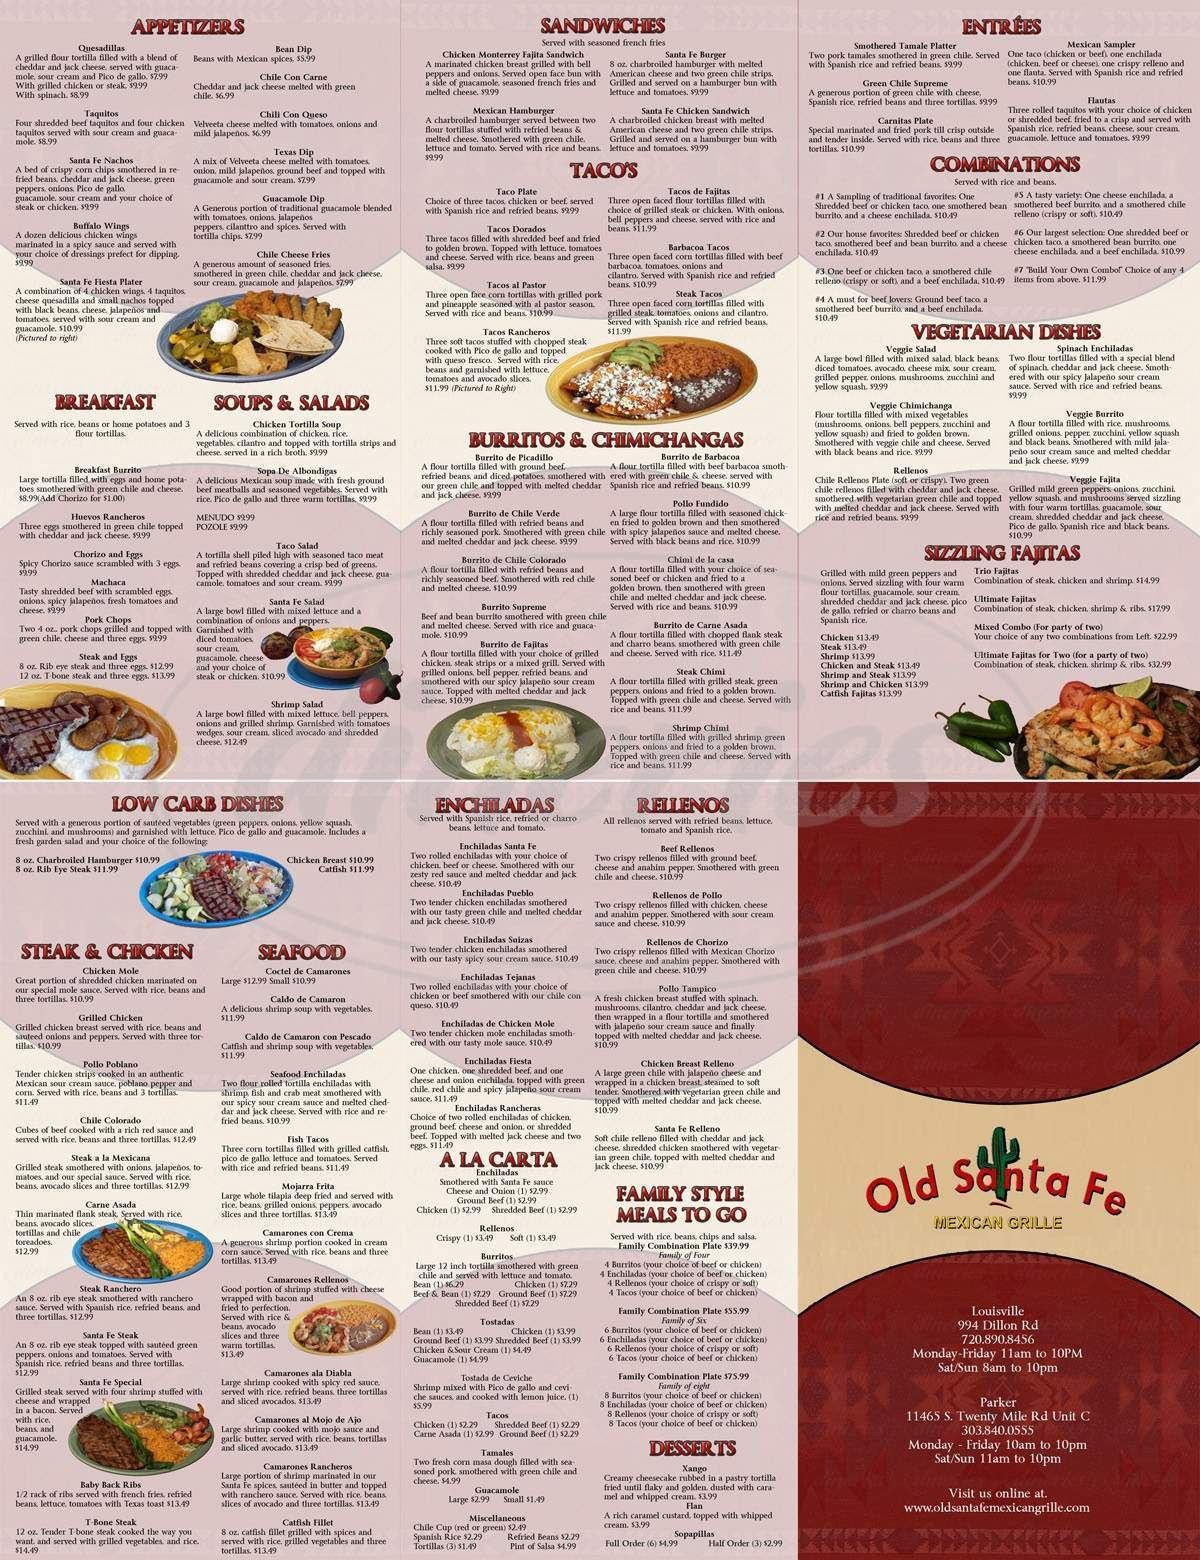 menu for Old Santa Fe Mexican Grill